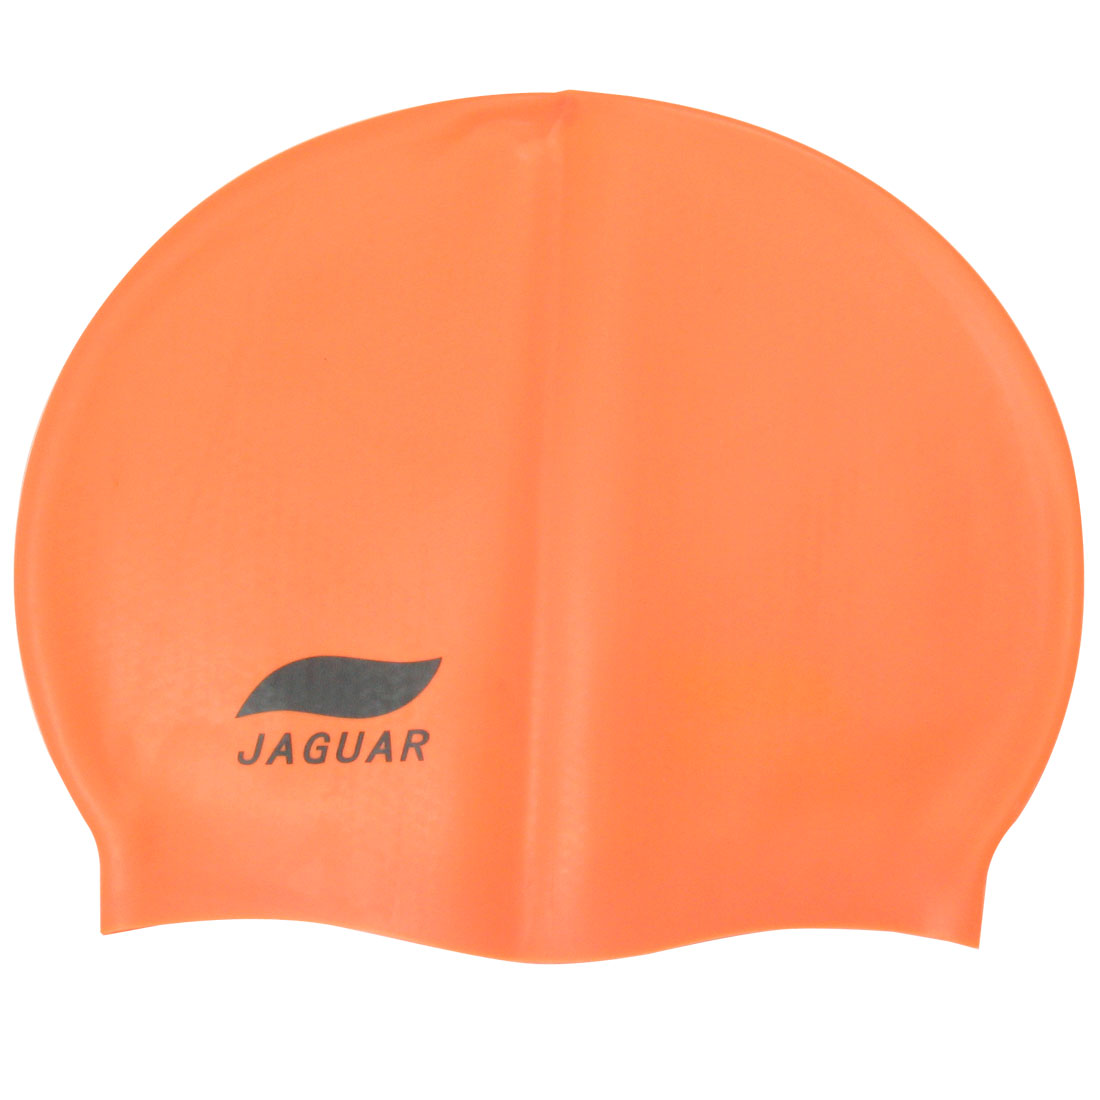 Orange Flexible Swimmer Thin Skin Silicone Swimming Cap